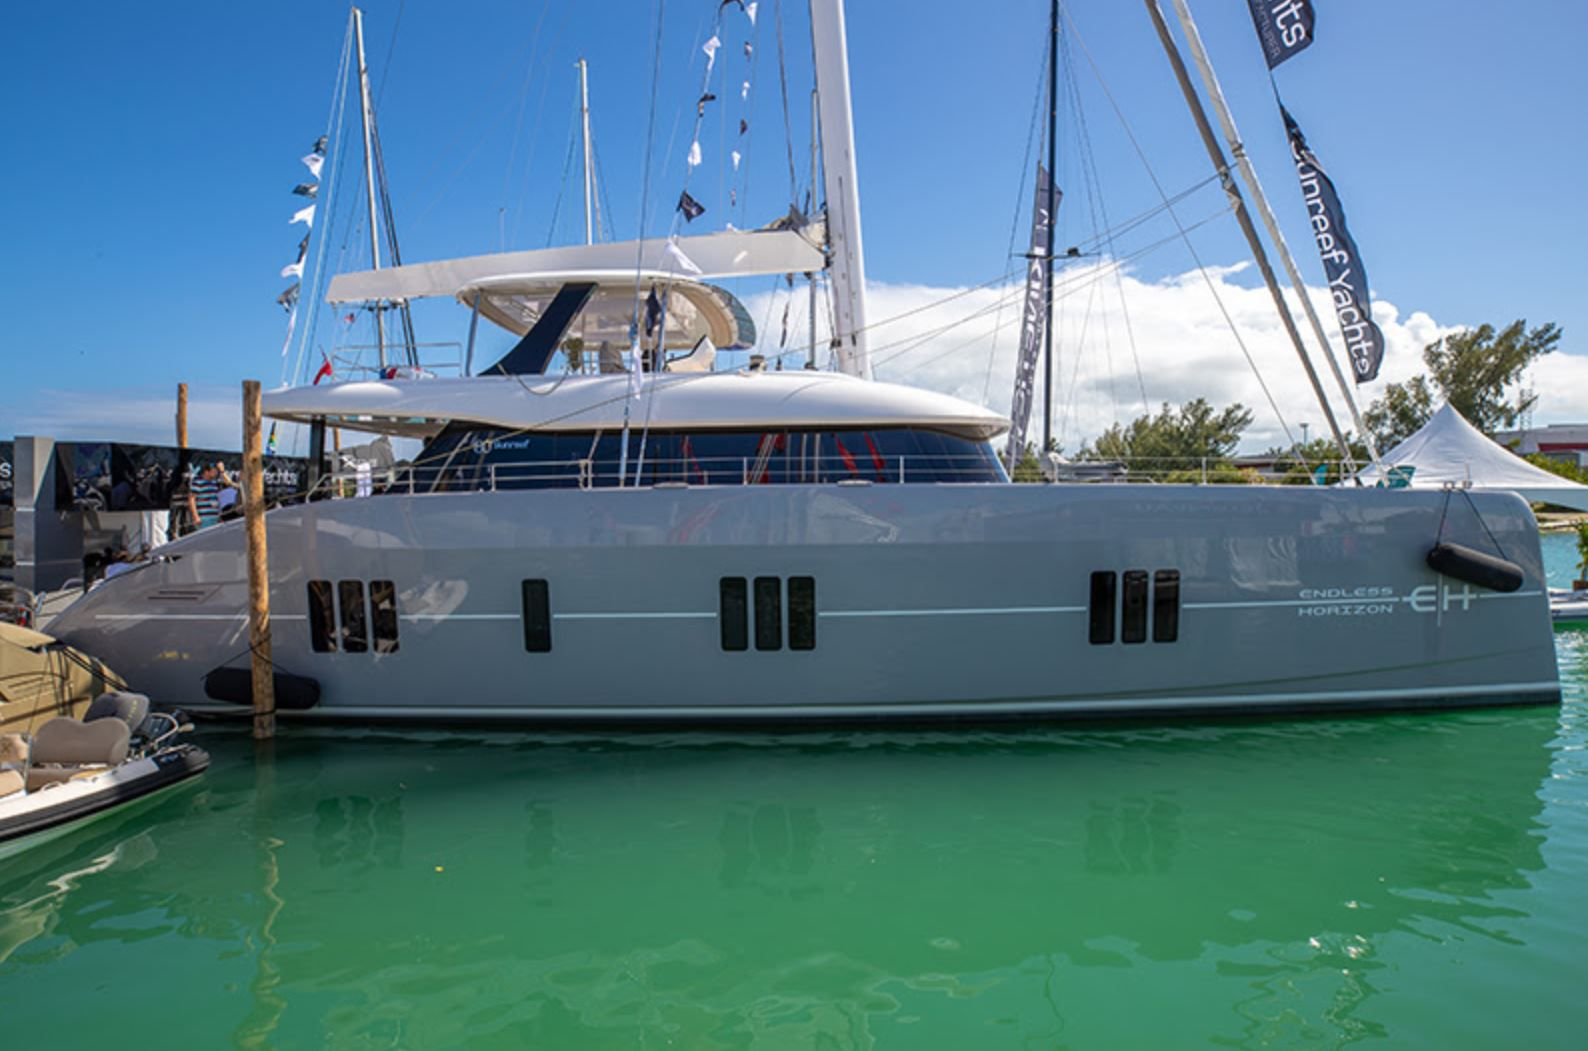 An exceptional result for Sunreef Yachts at the Miami Boat Show 2020